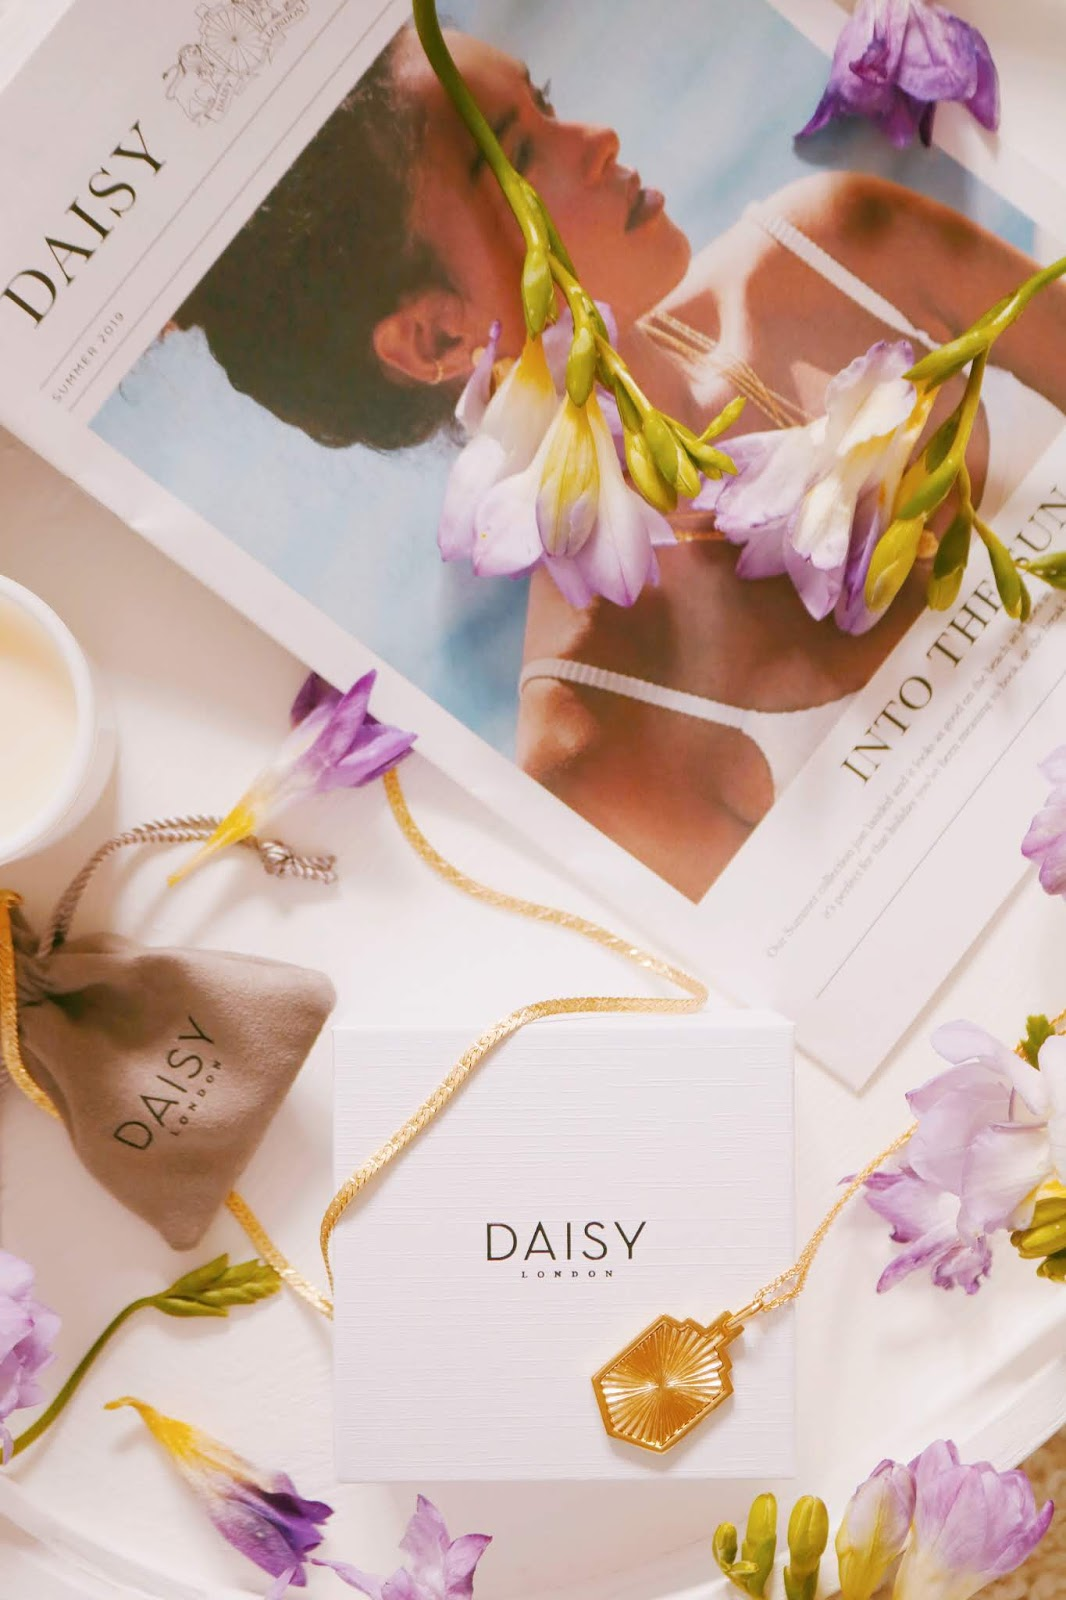 Daisy London x Estee Lalonde